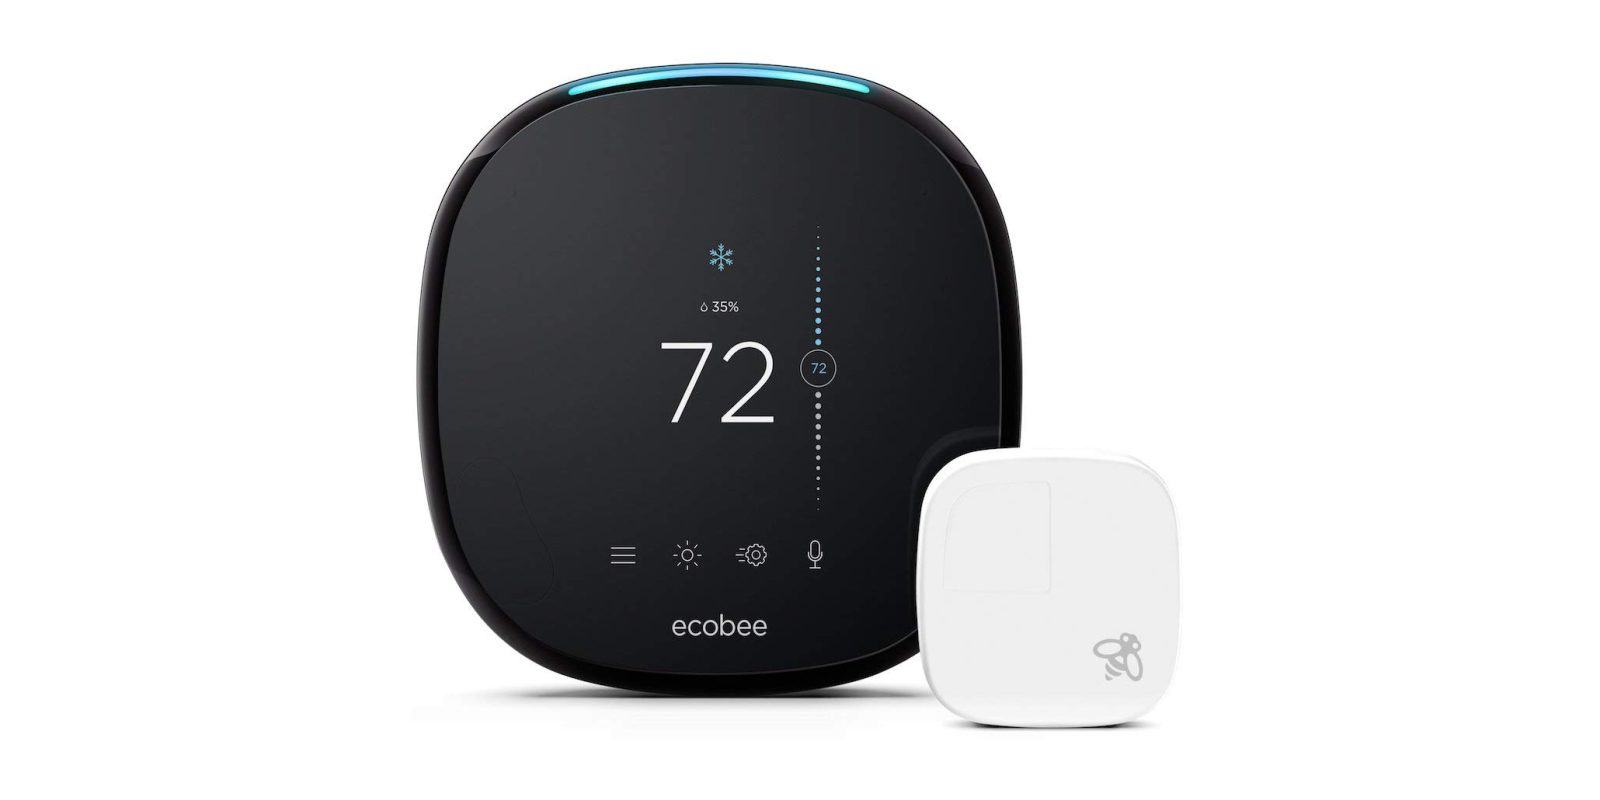 ecobee4 Smart Thermostat with HomeKit for $175 highlights today's Green Deals